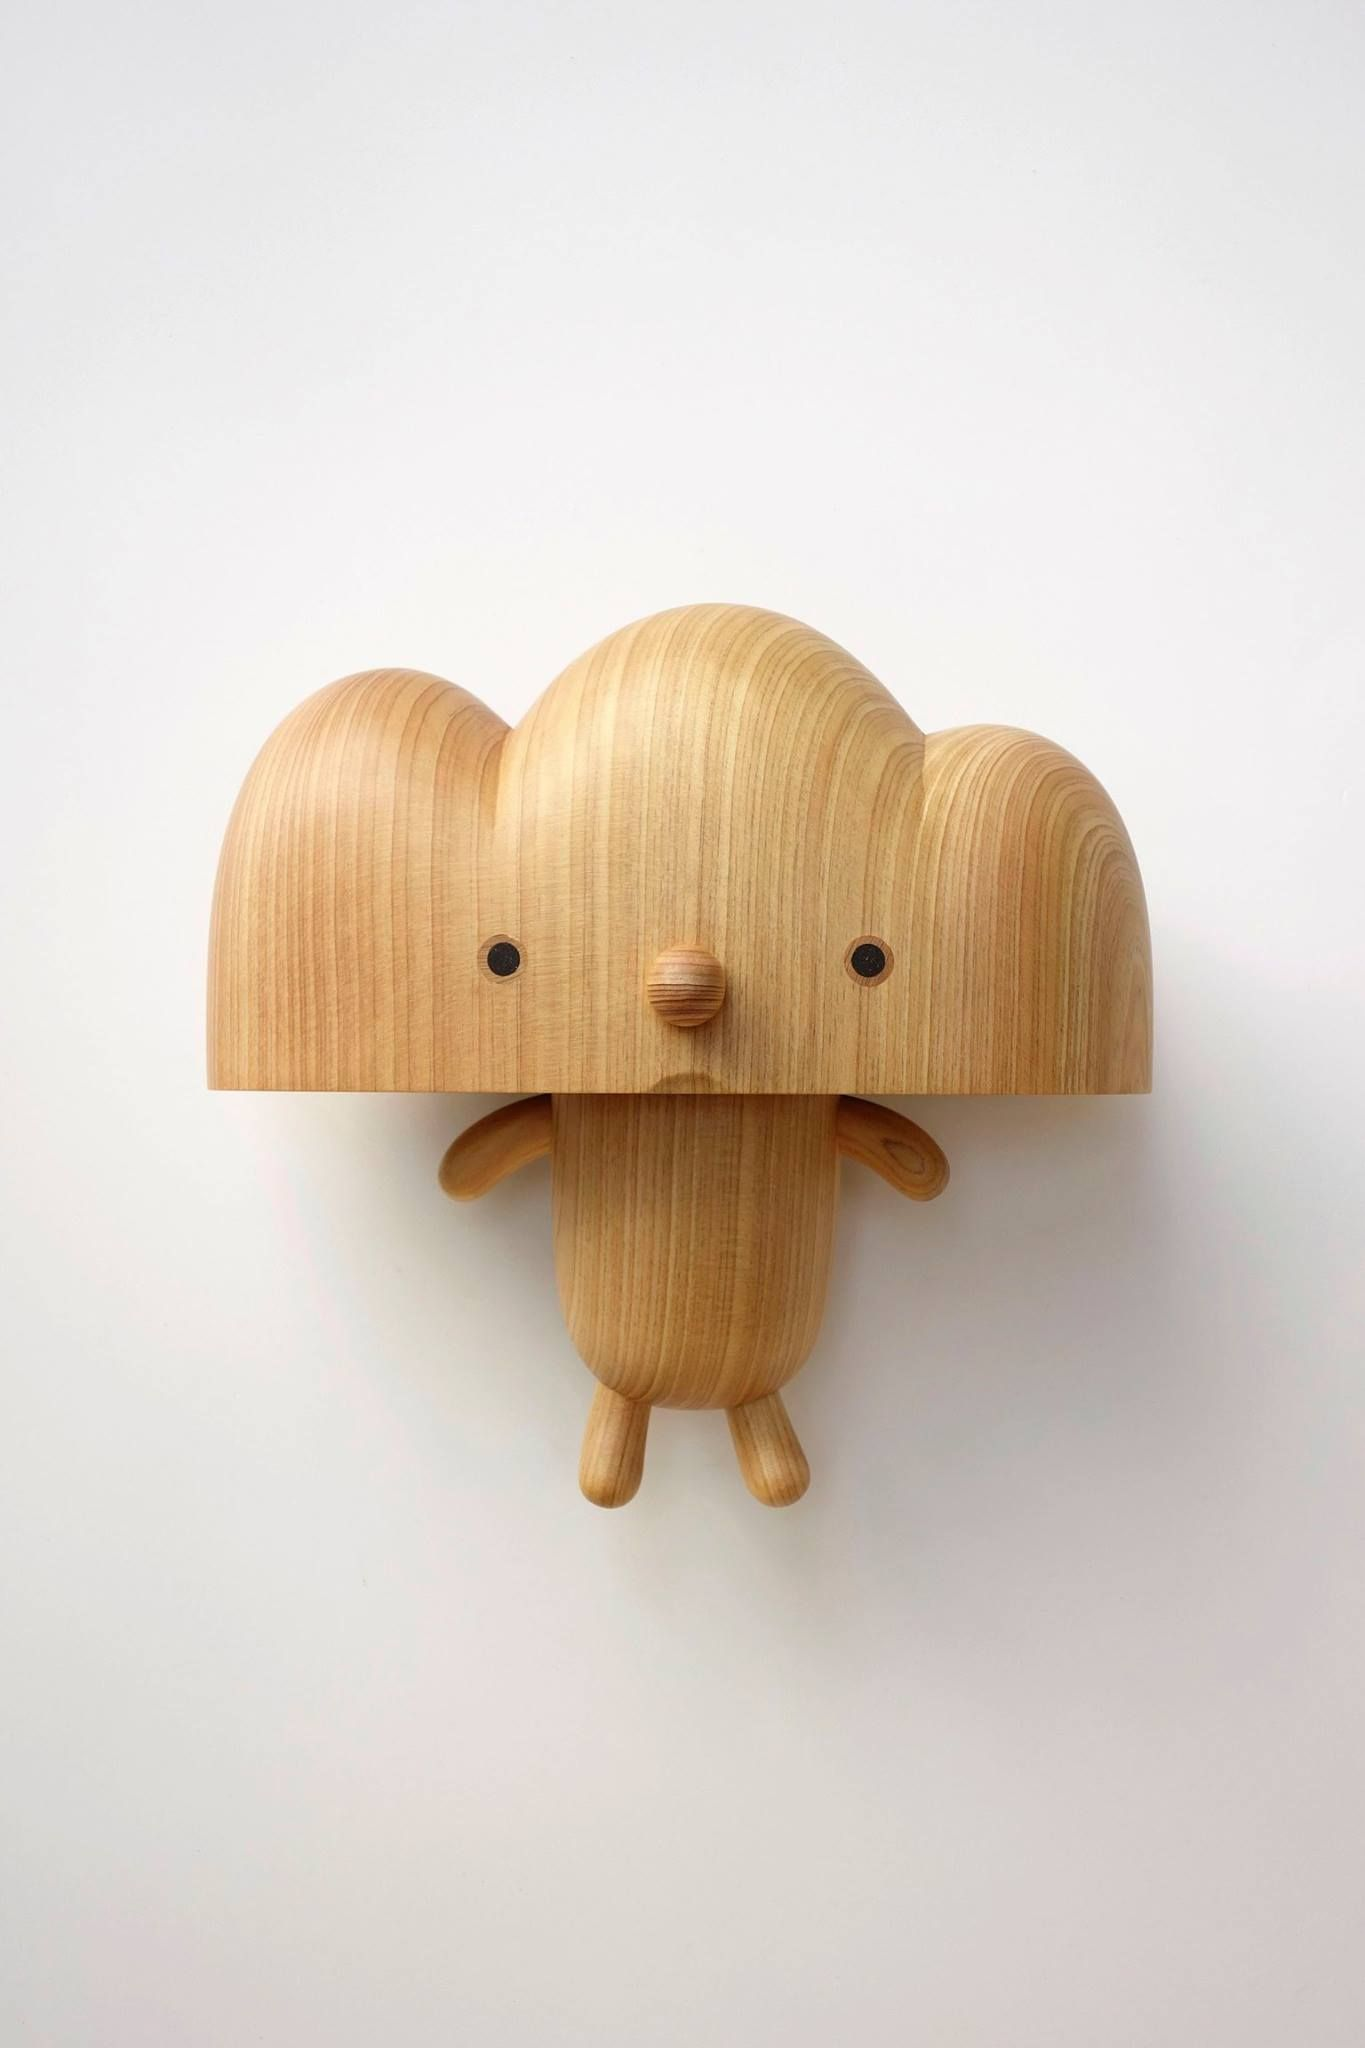 Wooden toys images  wooden toy by Yan Ruilin  Wood  Pinterest  Toys In the clouds